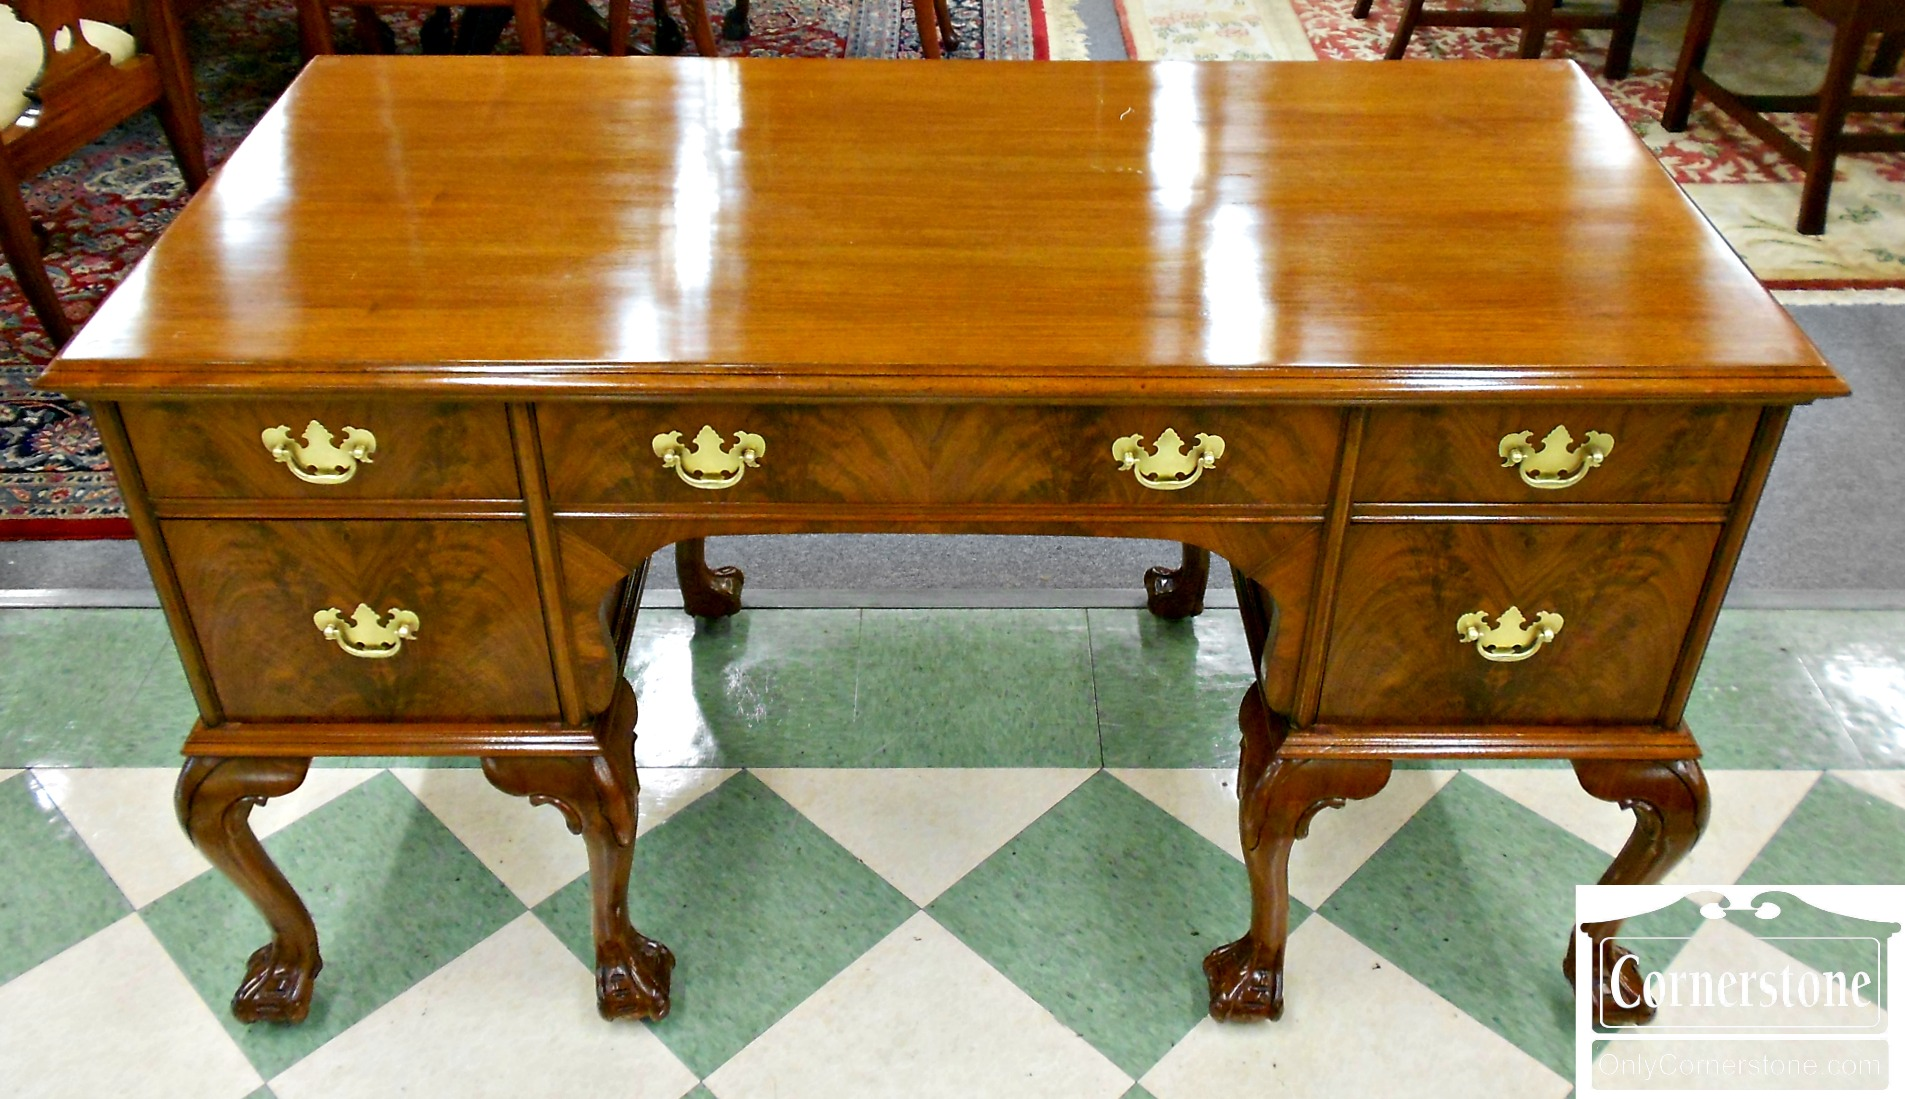 5961-1 Burled Walnut Chippendale Ball and Claw Foot Writing Desk